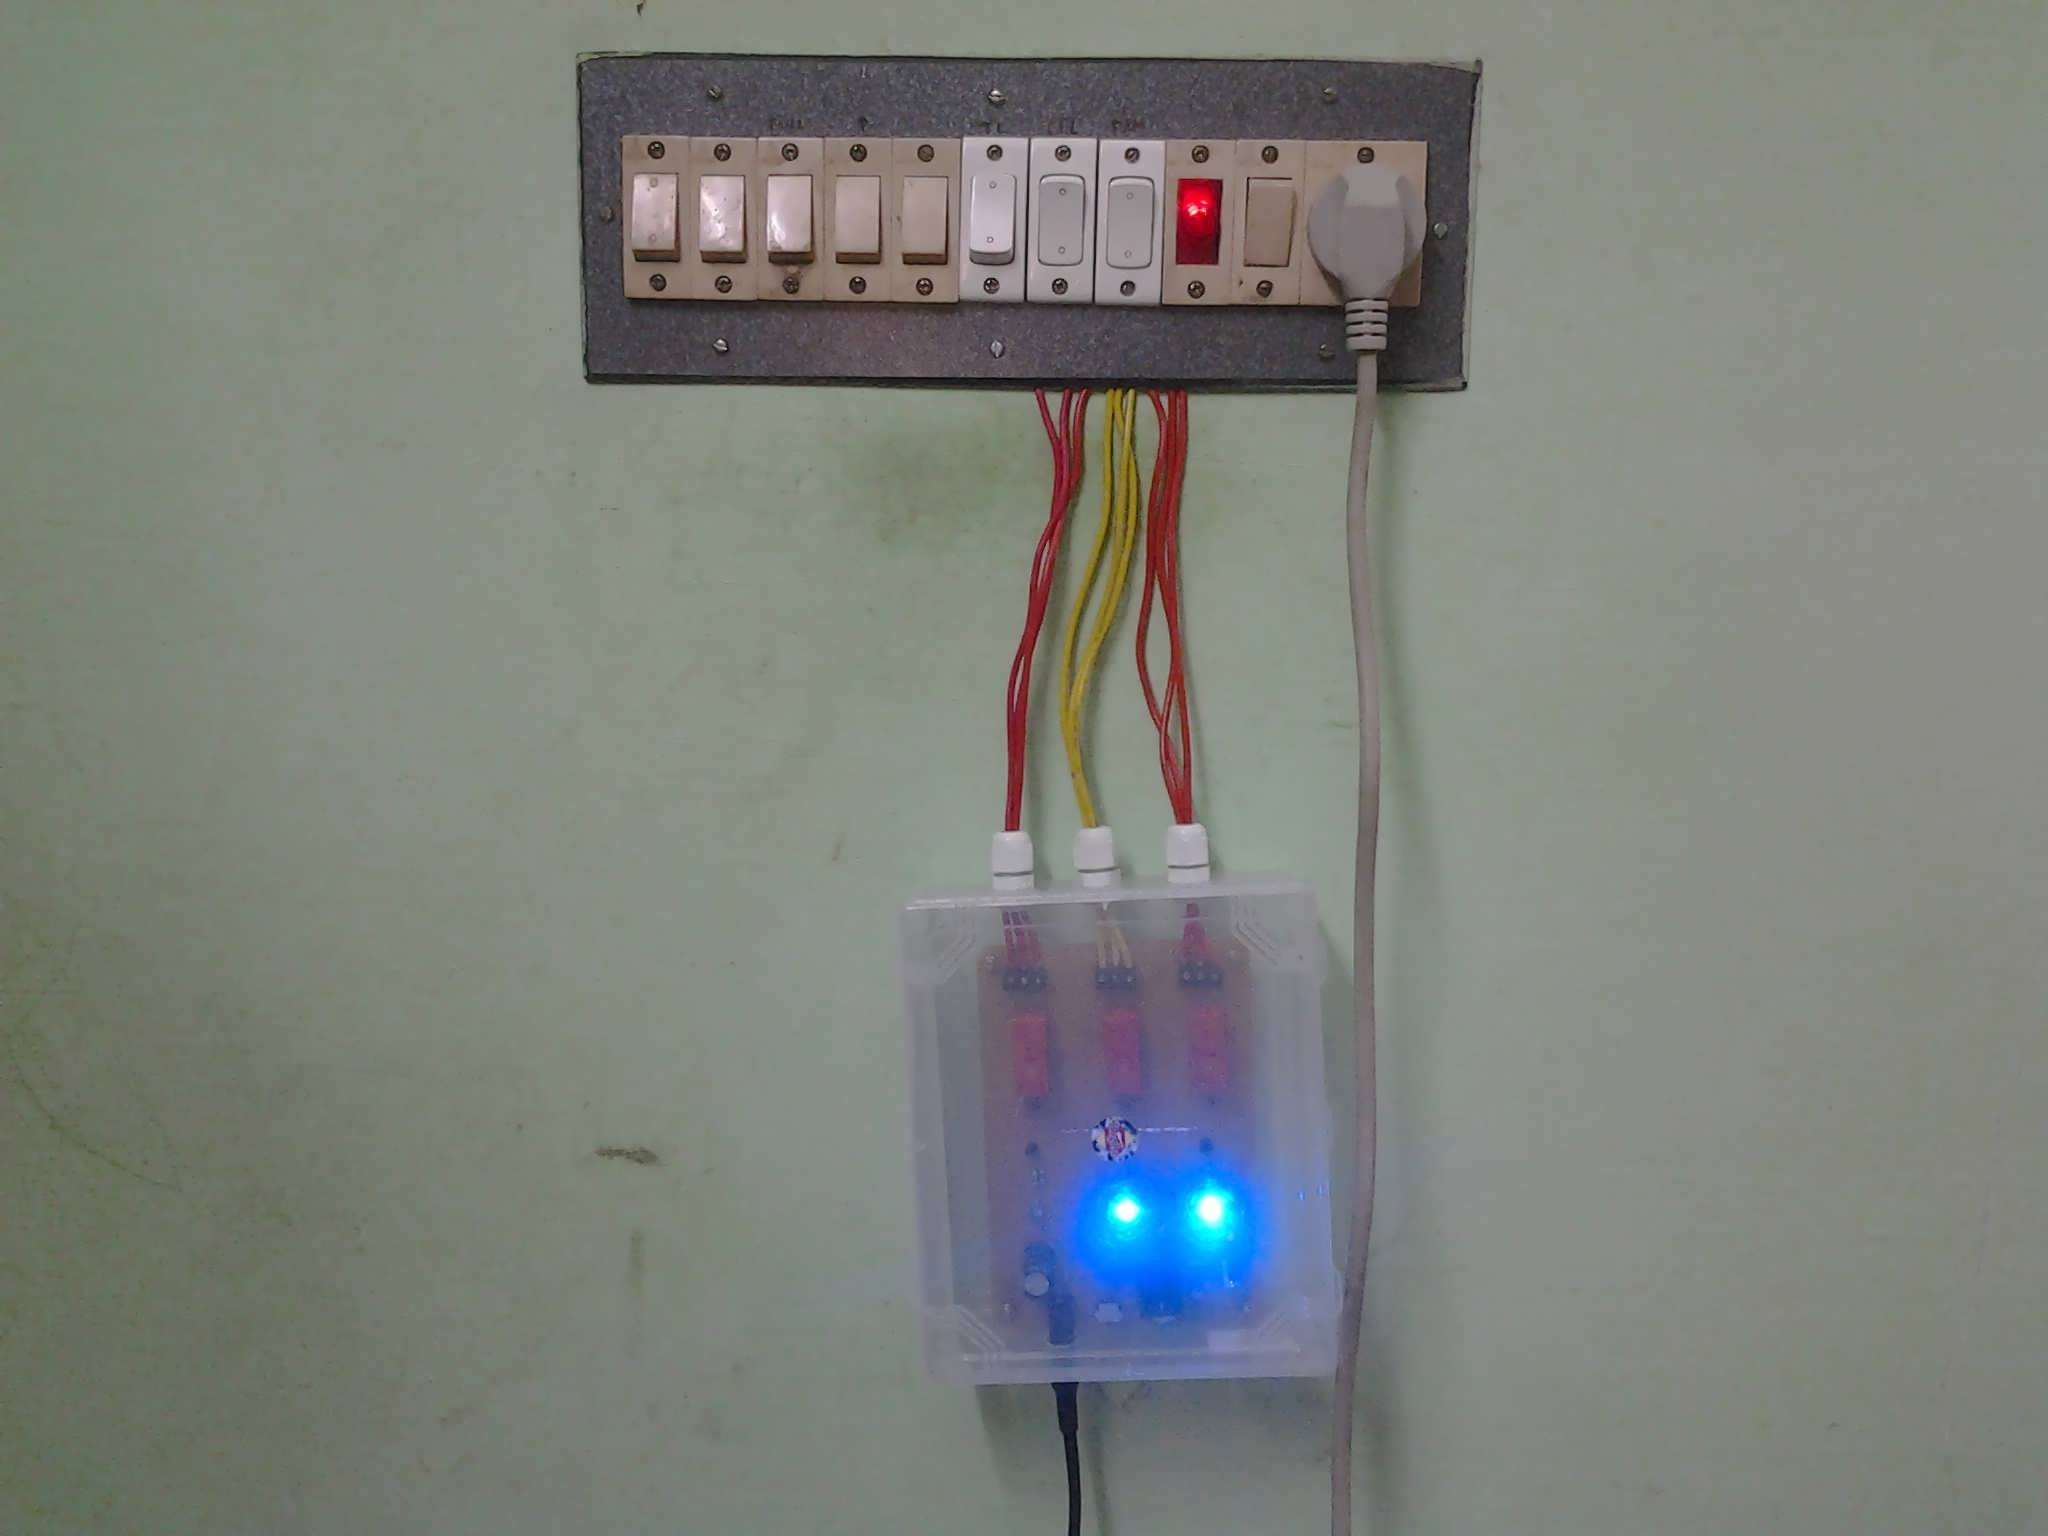 Ir Remote Control Home Appliances 5 Steps Infrared Wiring Circuit Diagram